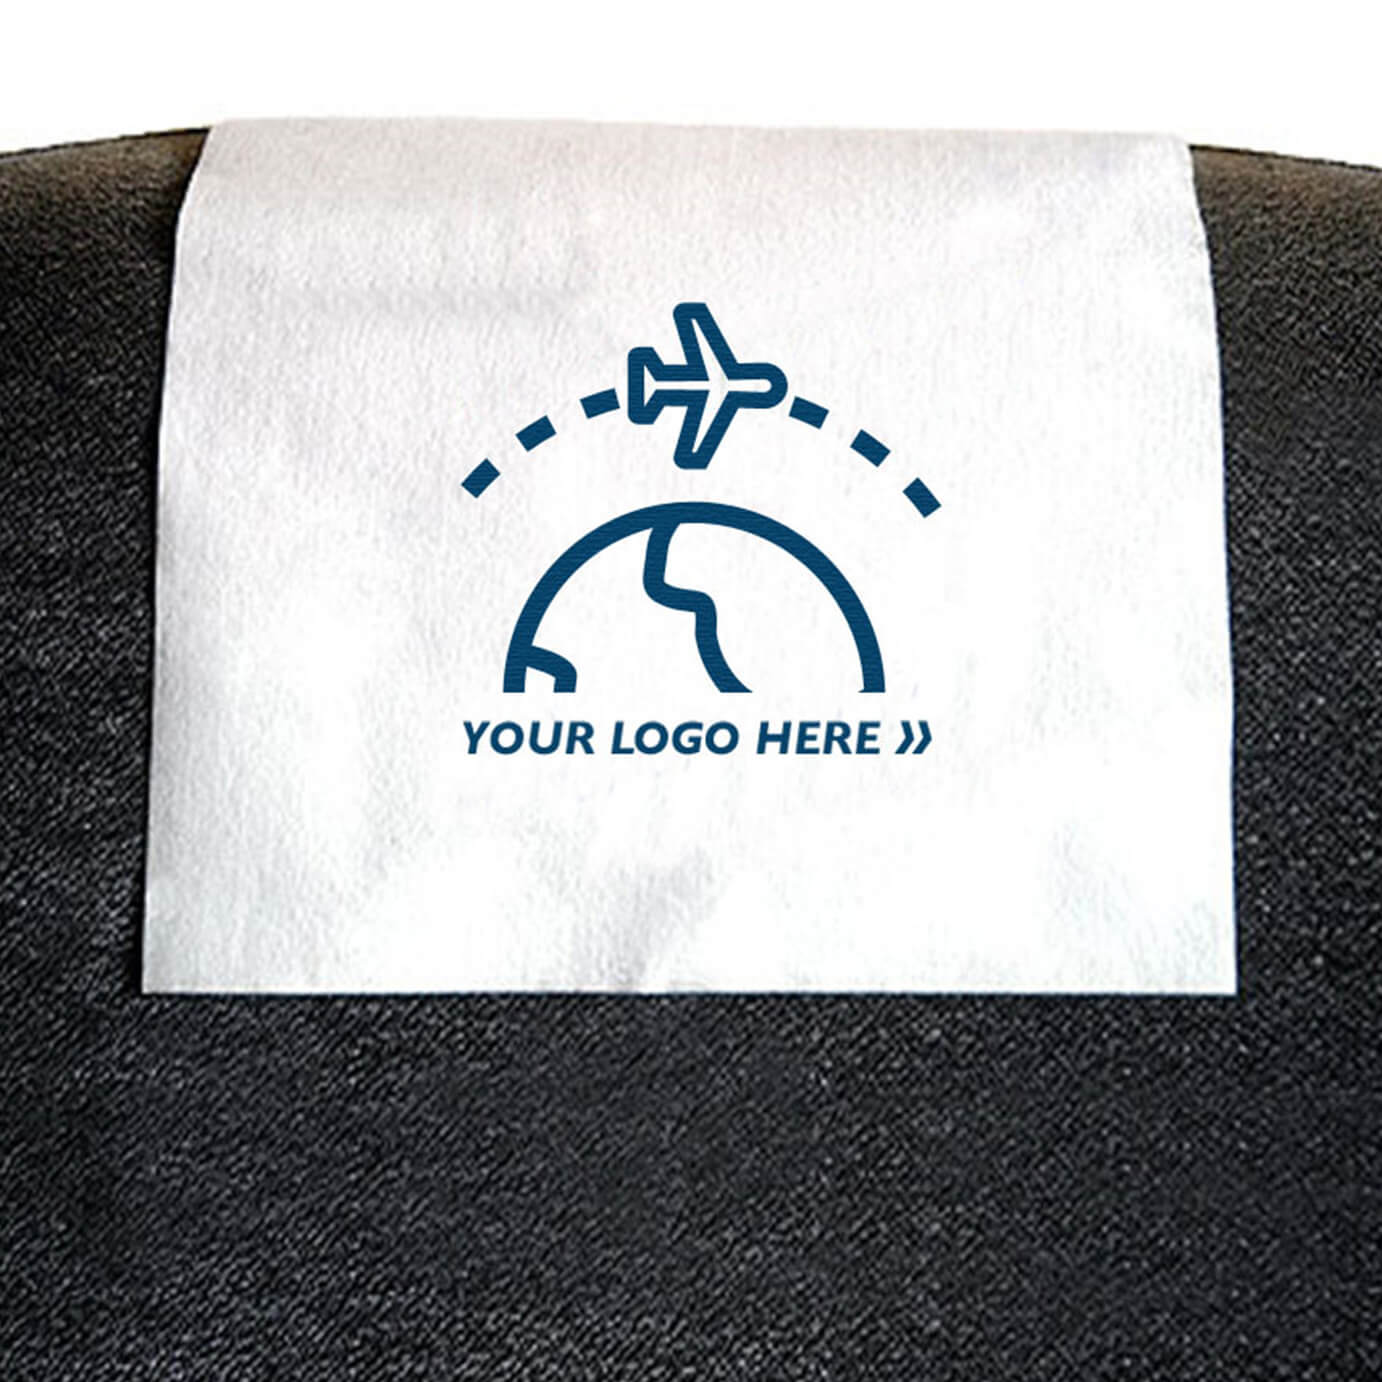 Disposable airline headrest covers from Horsleys